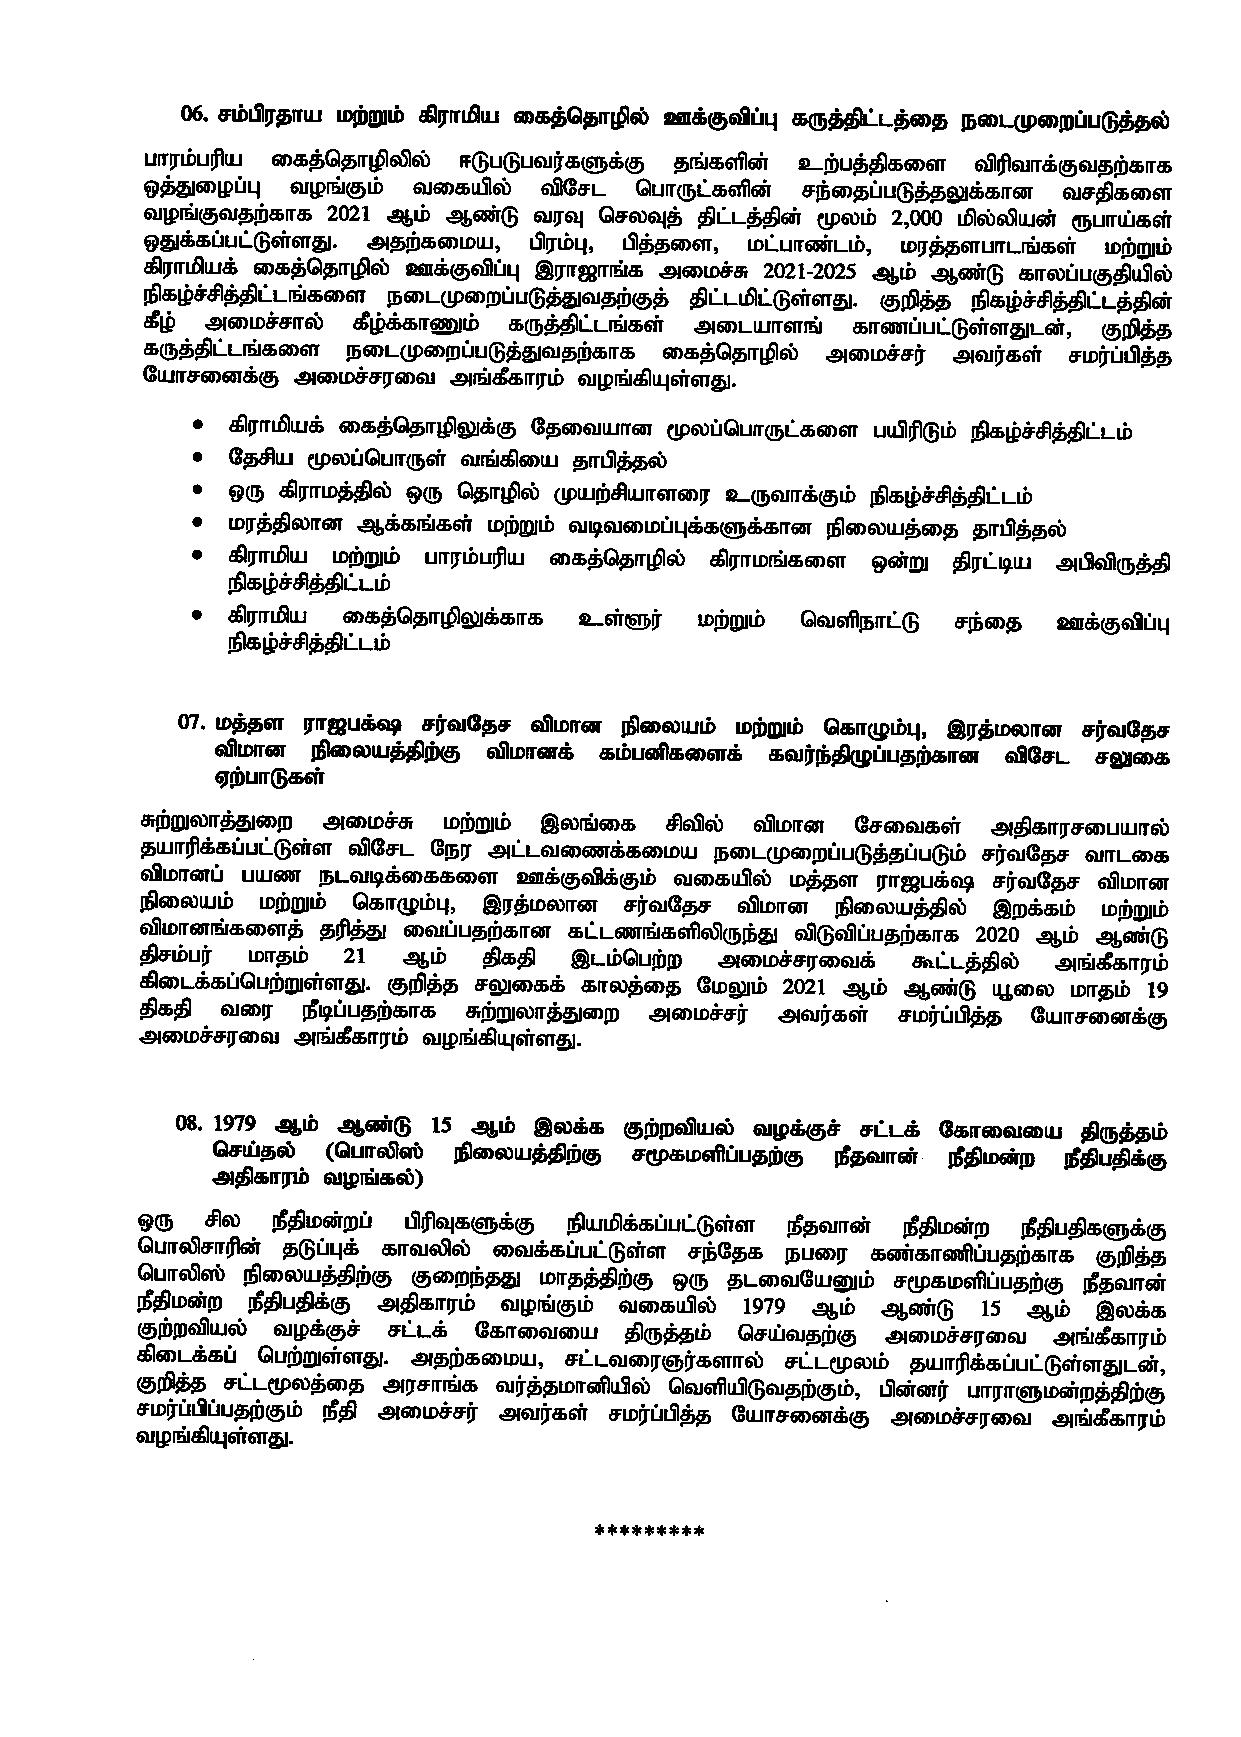 Cabinet Decison on 15.02.2021 Tamil page 003